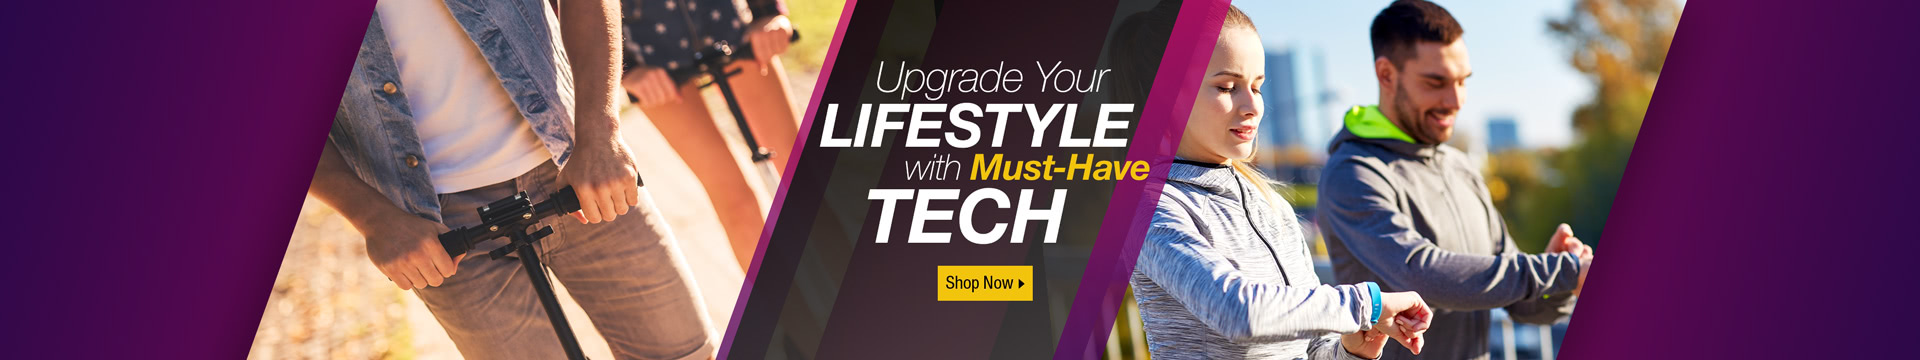 Upgrade your lifestyle with must-have tech